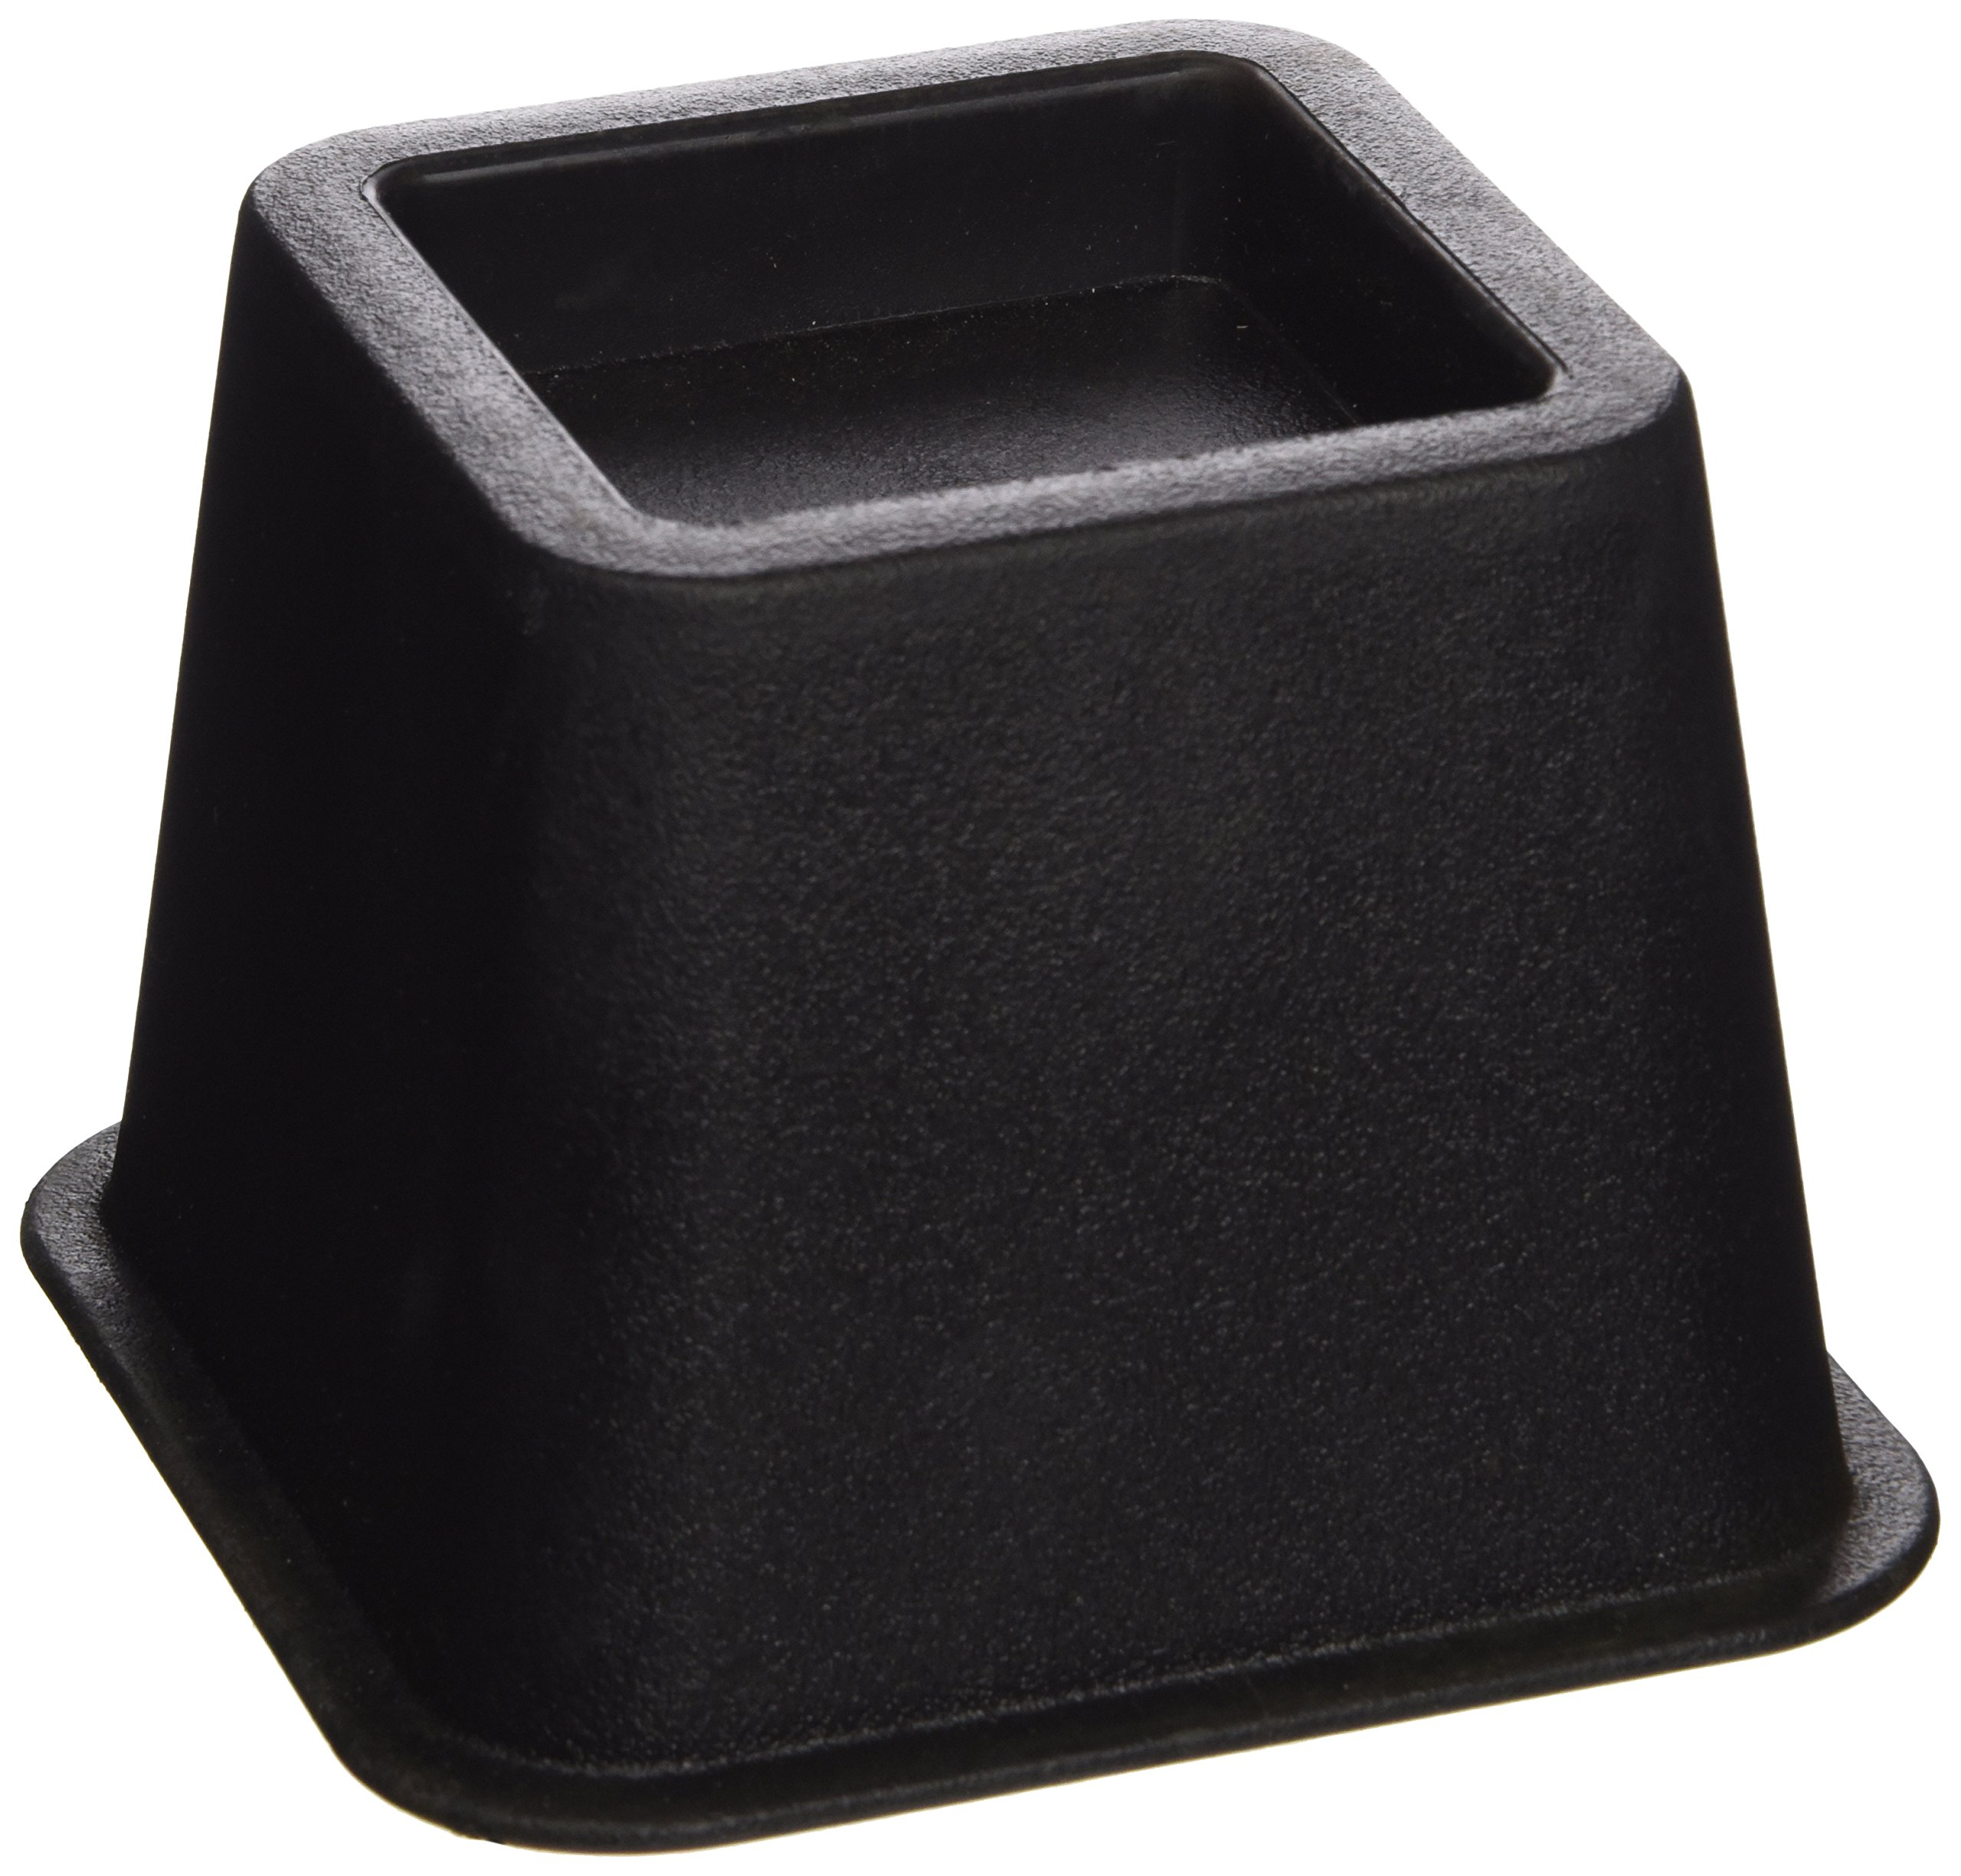 Bed and Chair Risers 4''